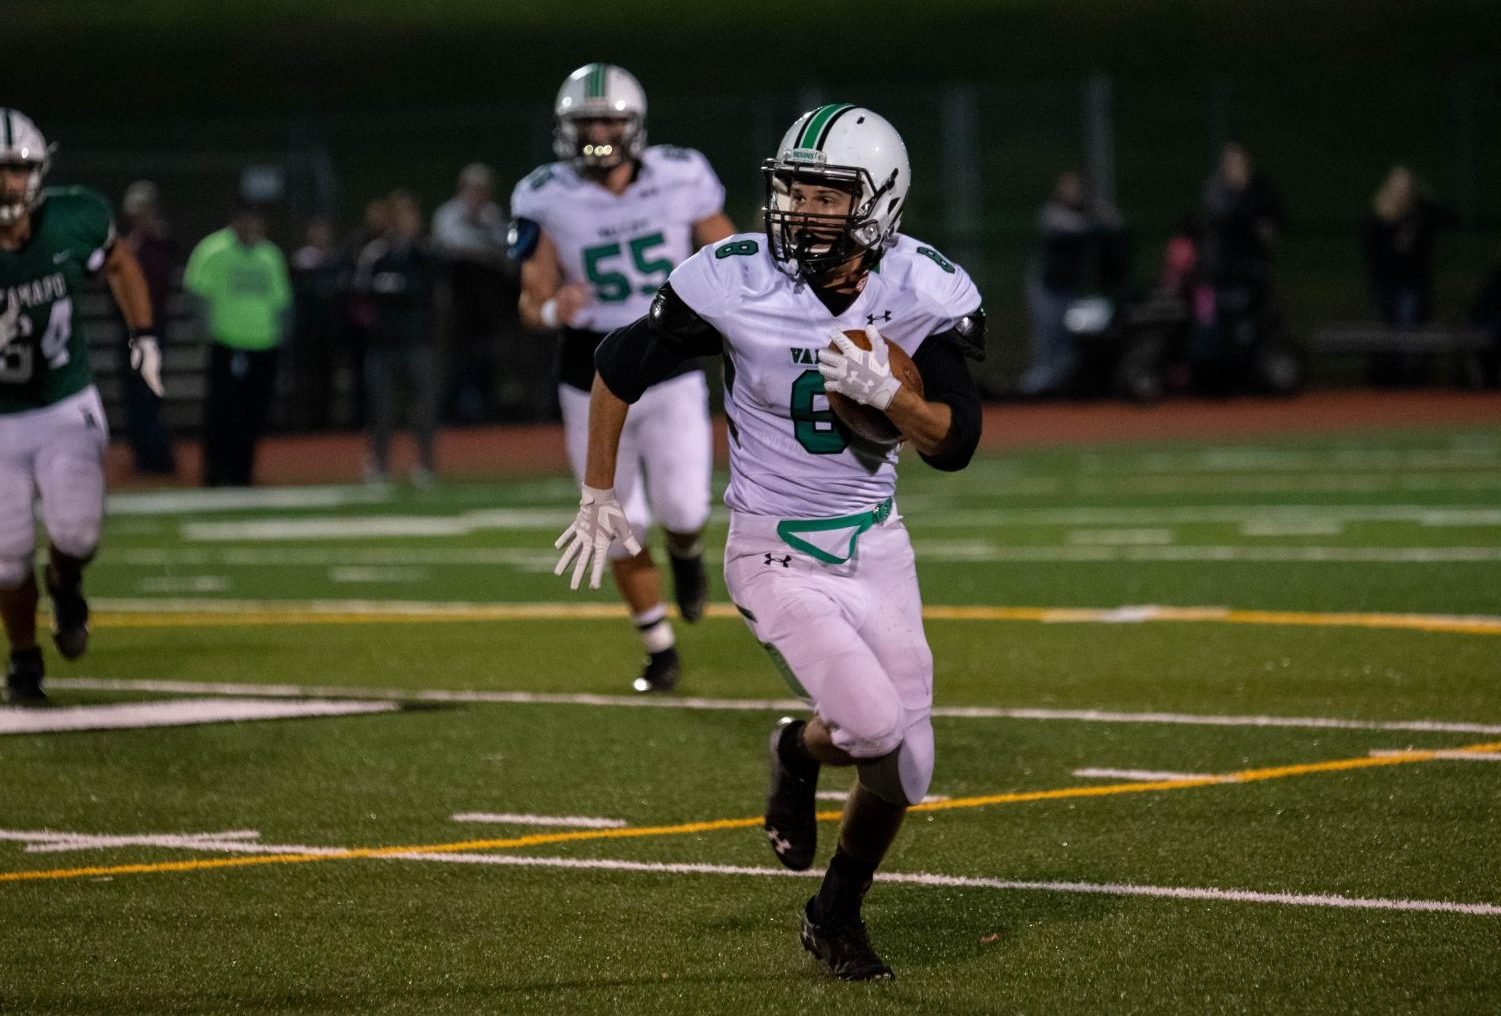 Andrew Martinez runs the ball upfield in Valley's Oct. 25 matchup against Ramapo. The Raiders would go on to beat the Indians 42-14 in Valley's regular season finale.